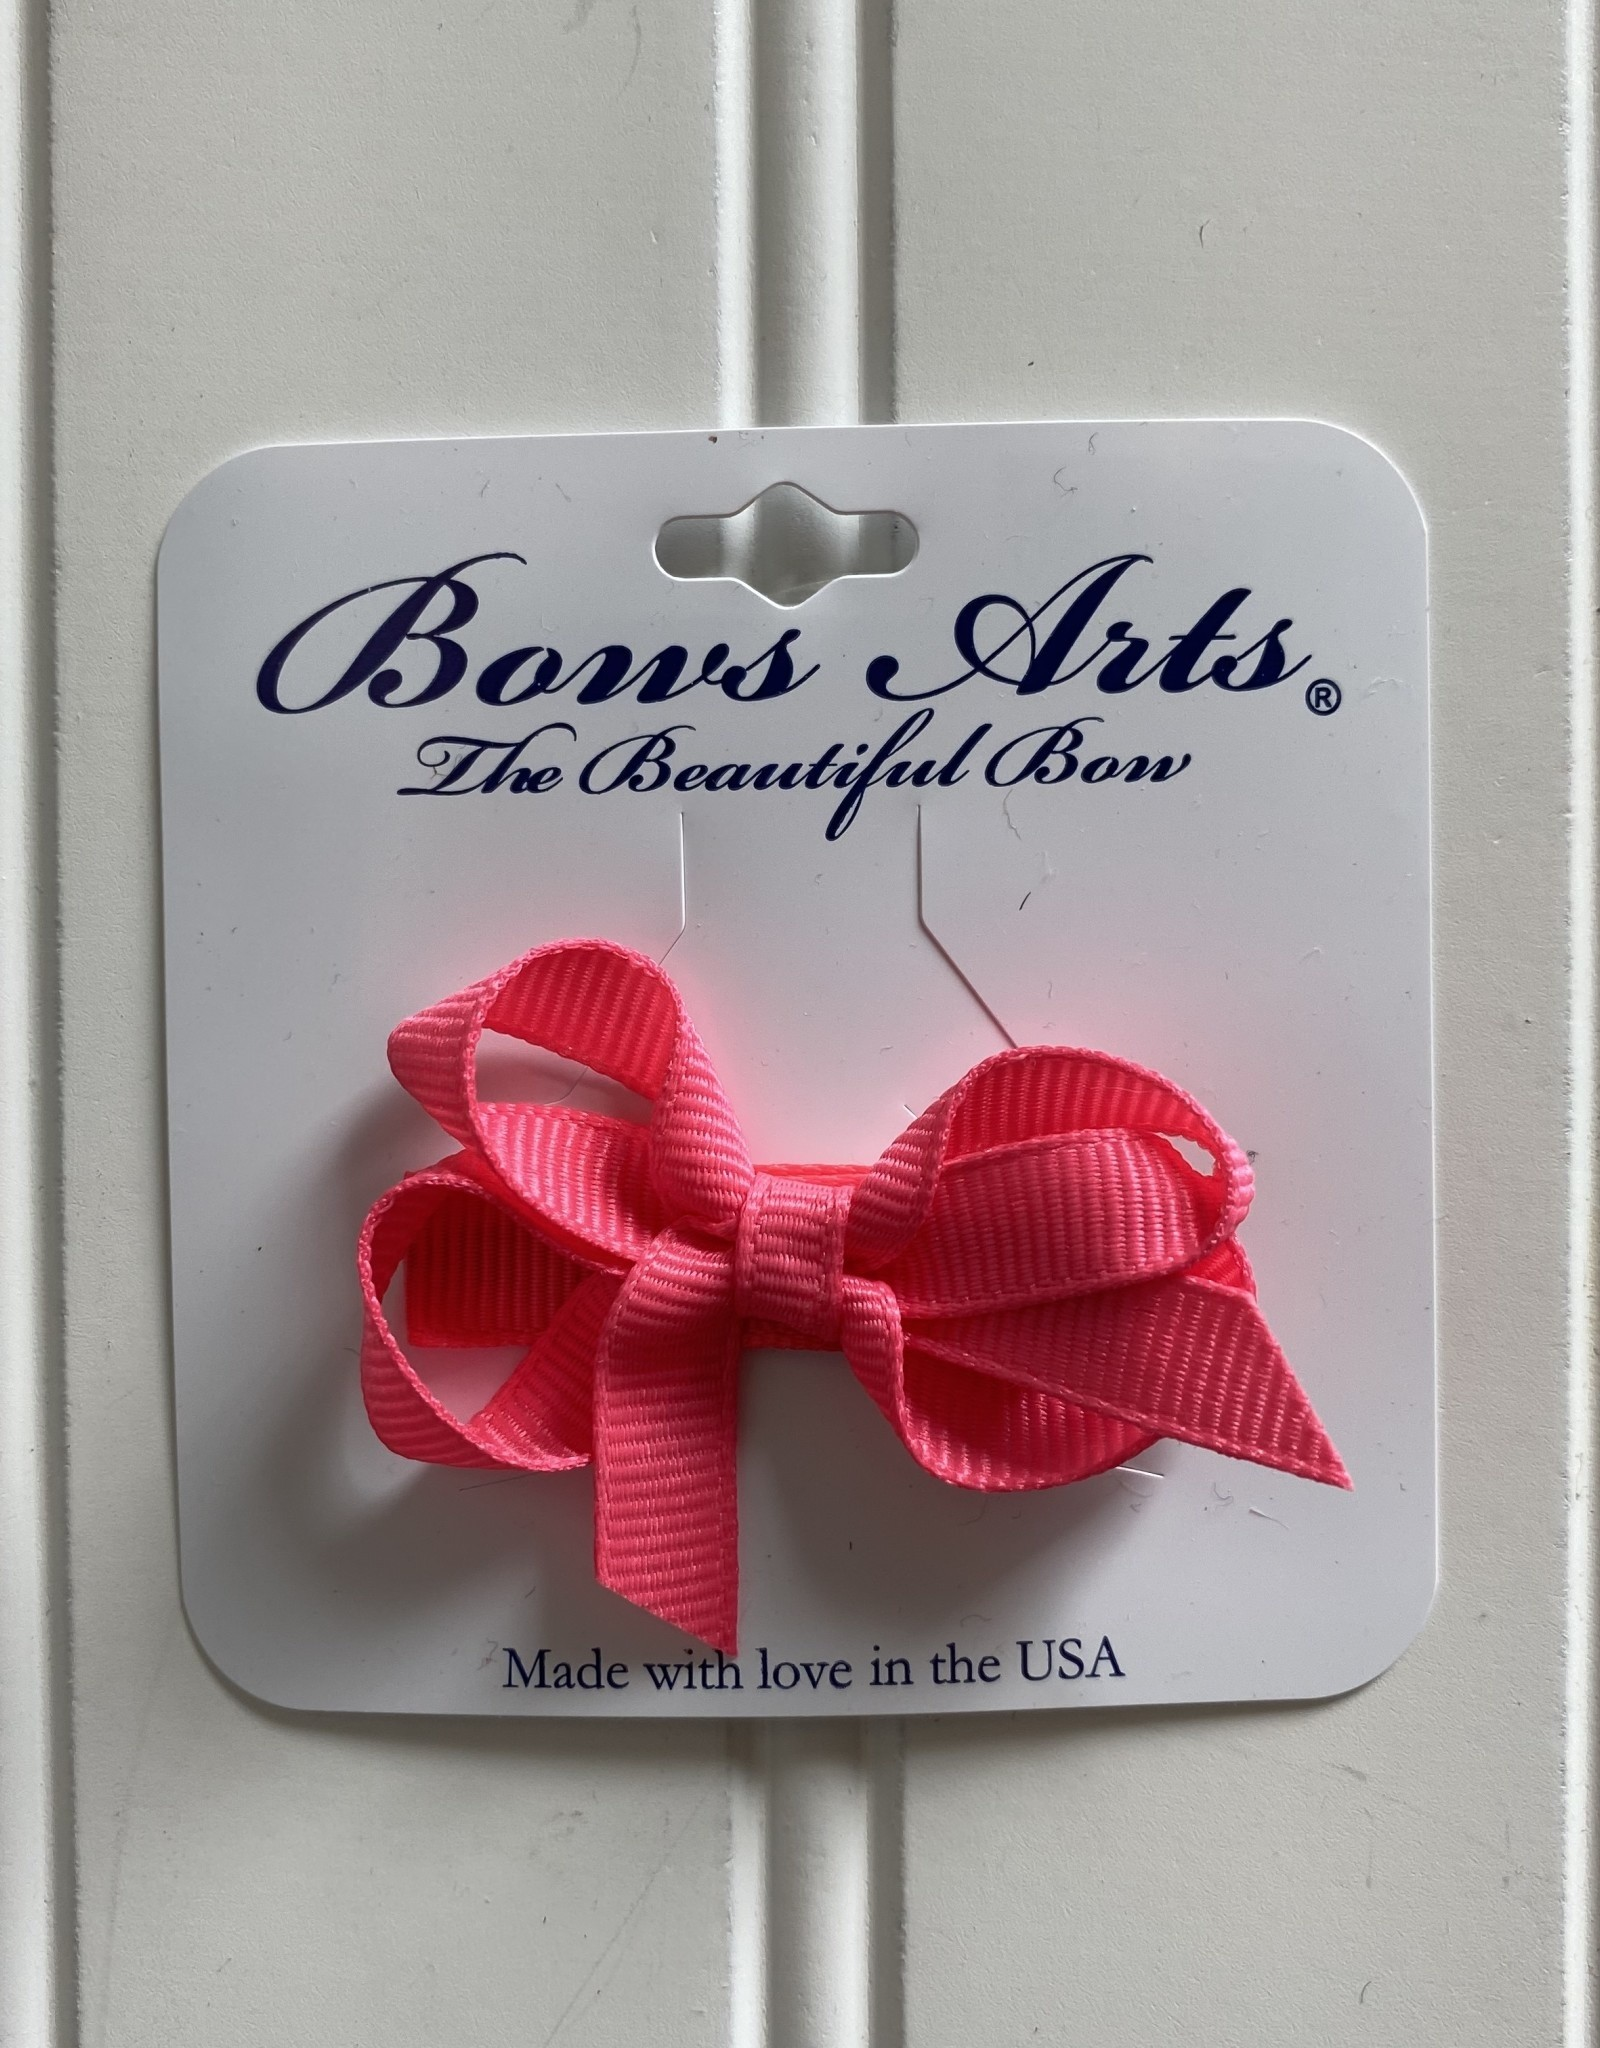 "Bows Arts Infant Classic Bow 2"" Grippie Clippie -Shocking Pink"